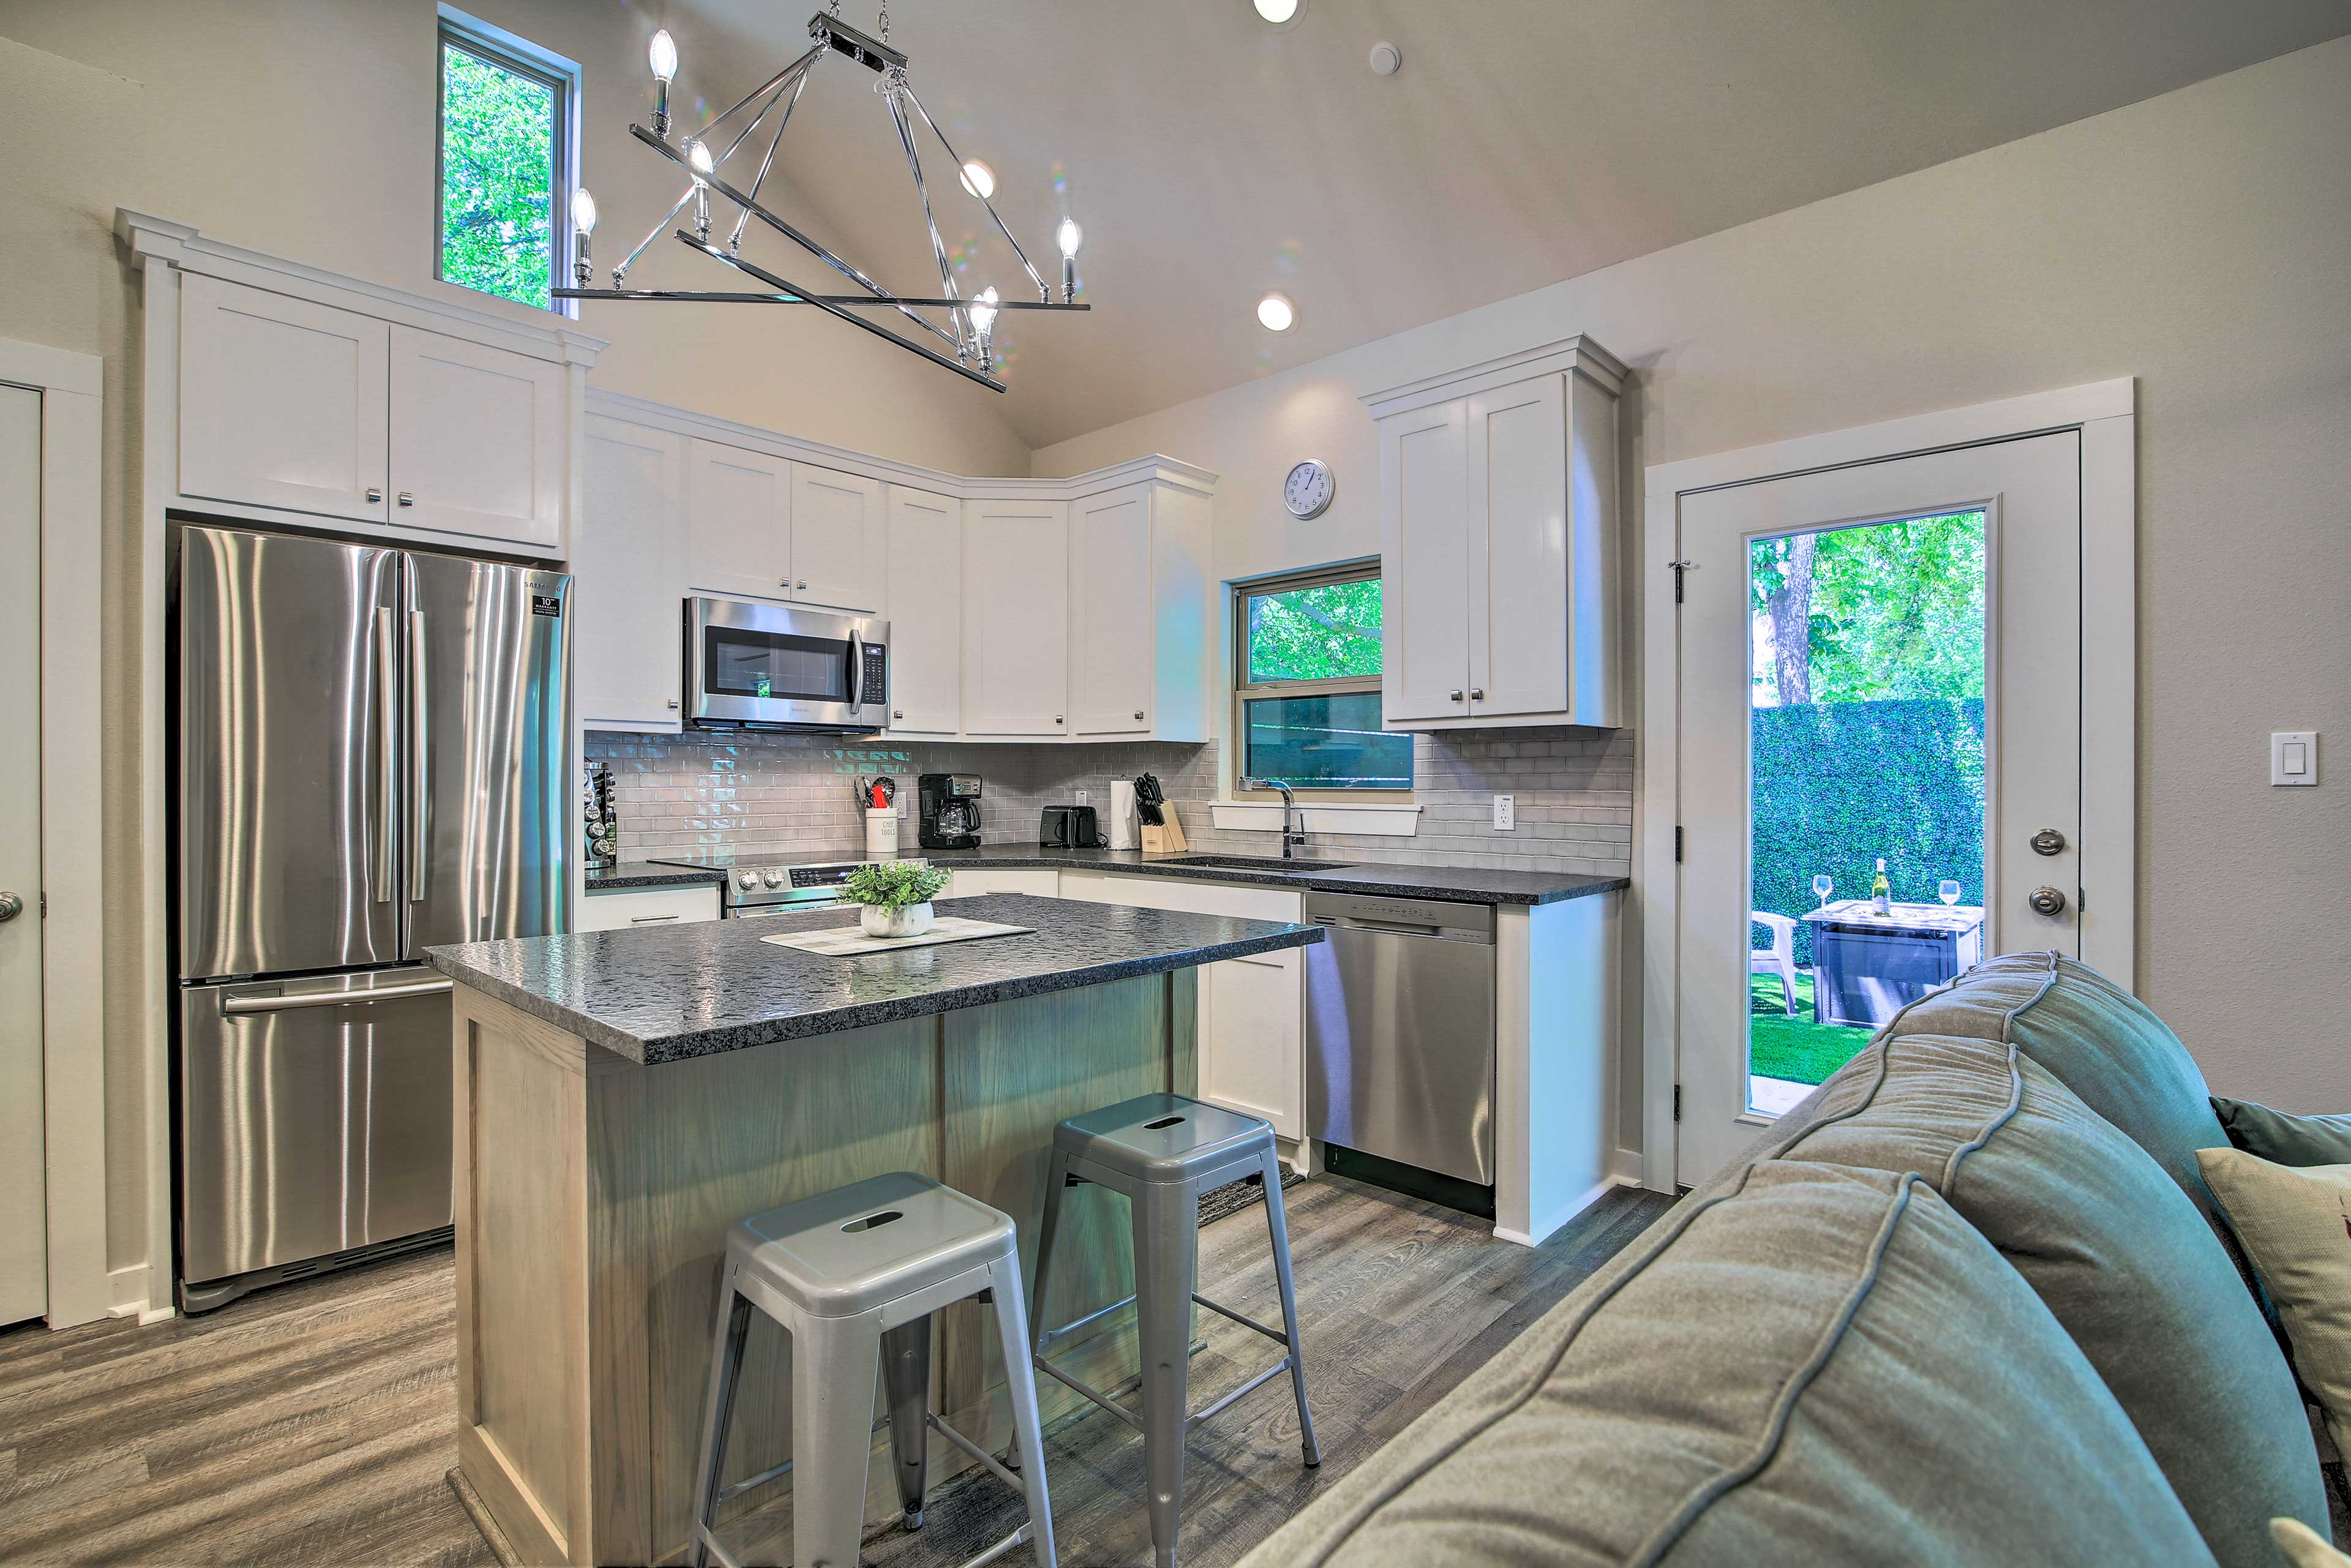 Try out a new recipe in this vacation rental's pristine full kitchen.